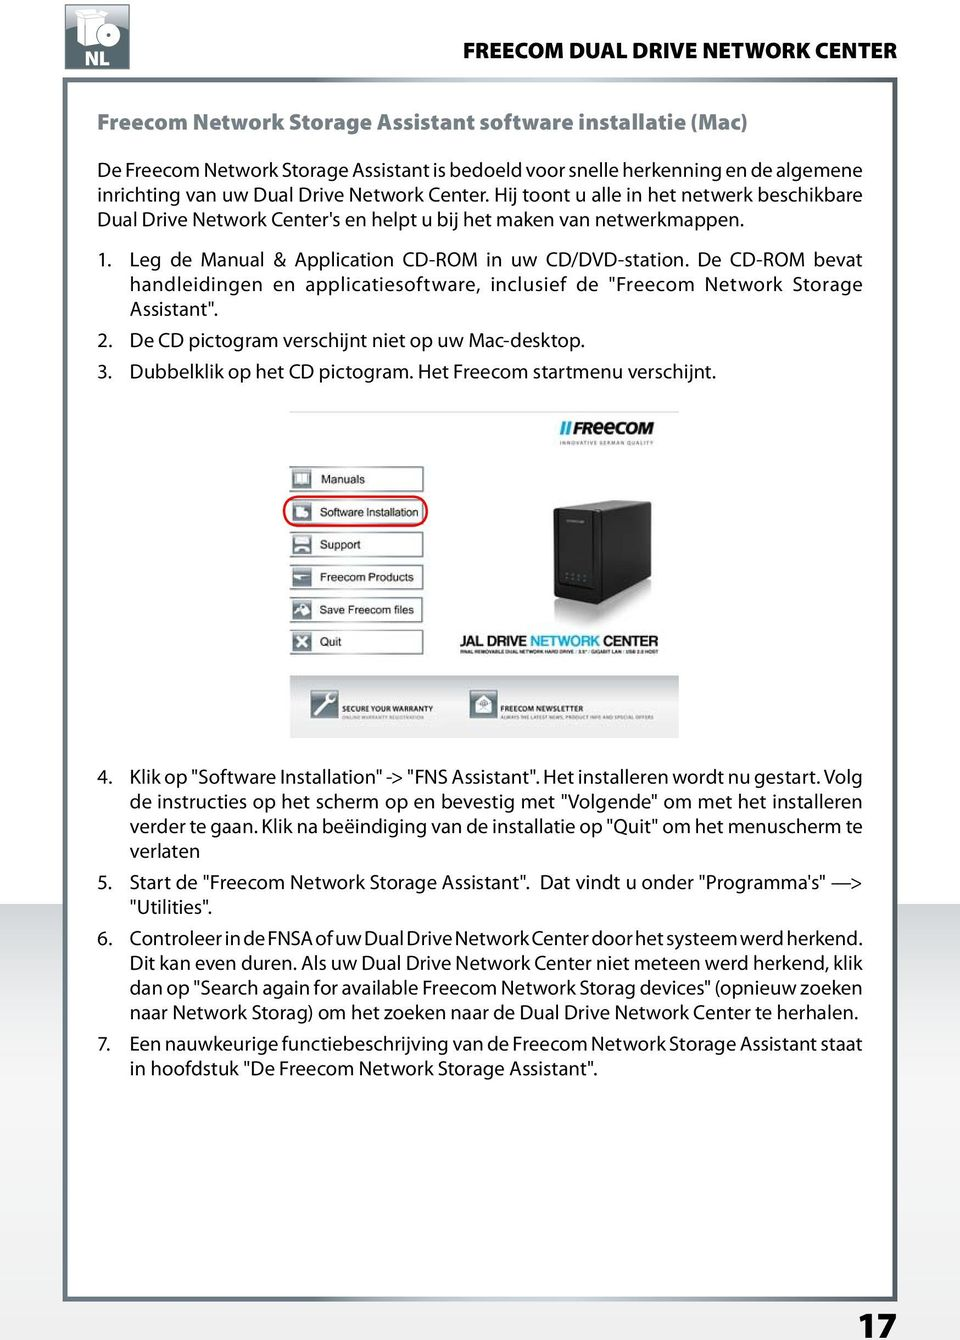 "De CD-ROM bevat handleidingen en applicatiesoftware, inclusief de ""Freecom Network Storage Assistant"". 2. De CD pictogram verschijnt niet op uw Mac-desktop. 3. Dubbelklik op het CD pictogram."